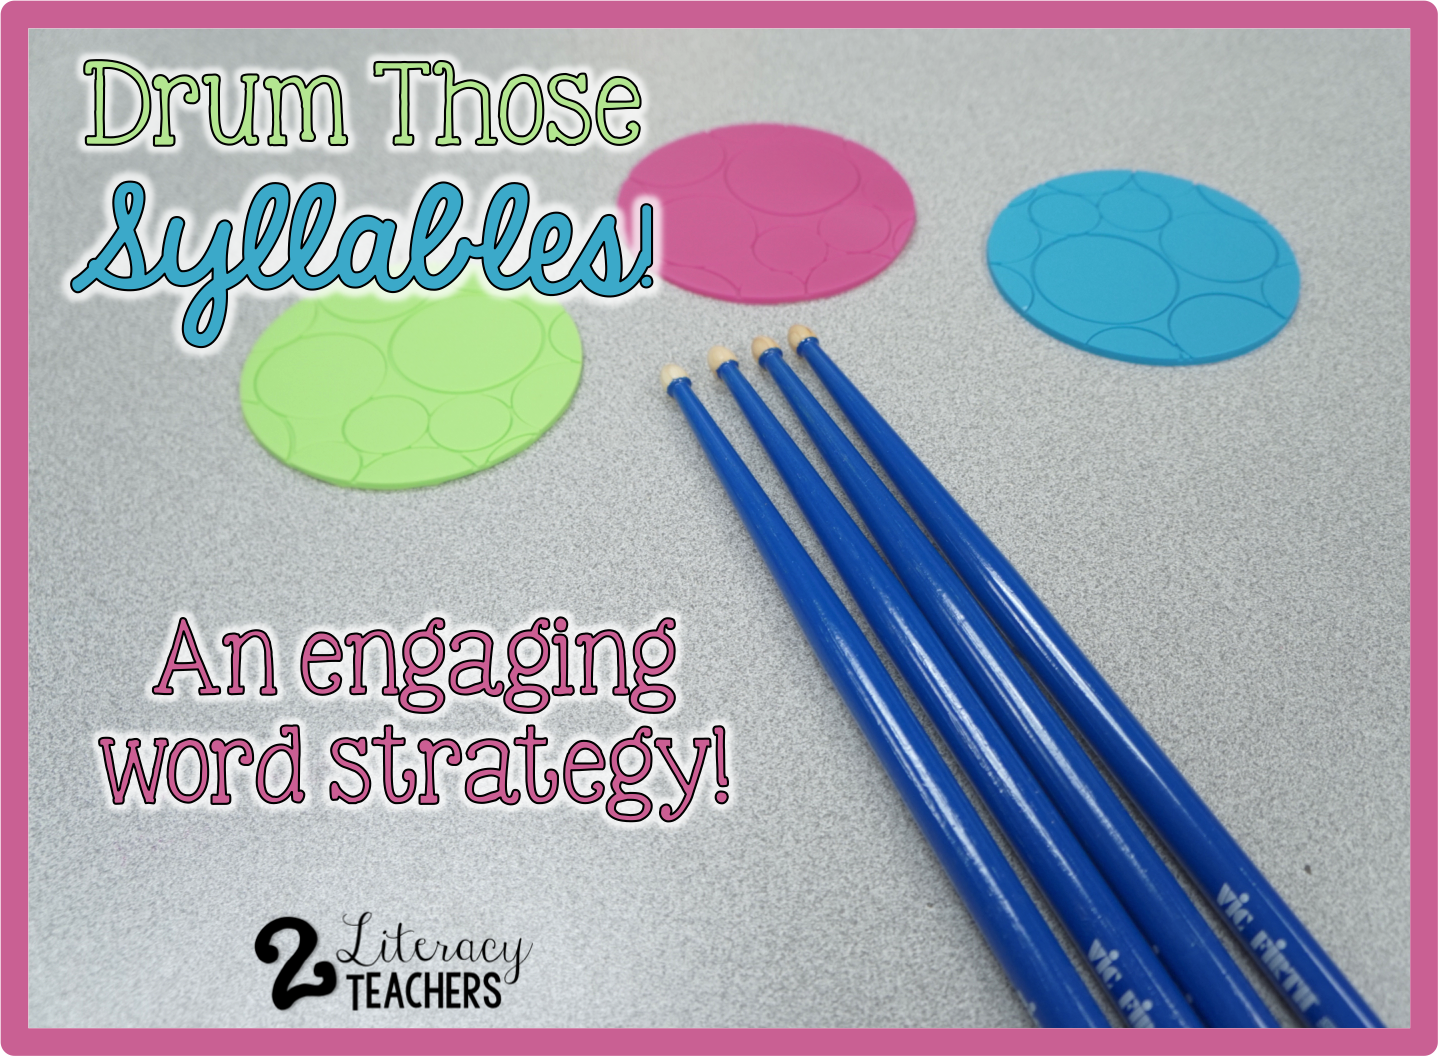 Tuesday's Tip – Drum Those Syllables!